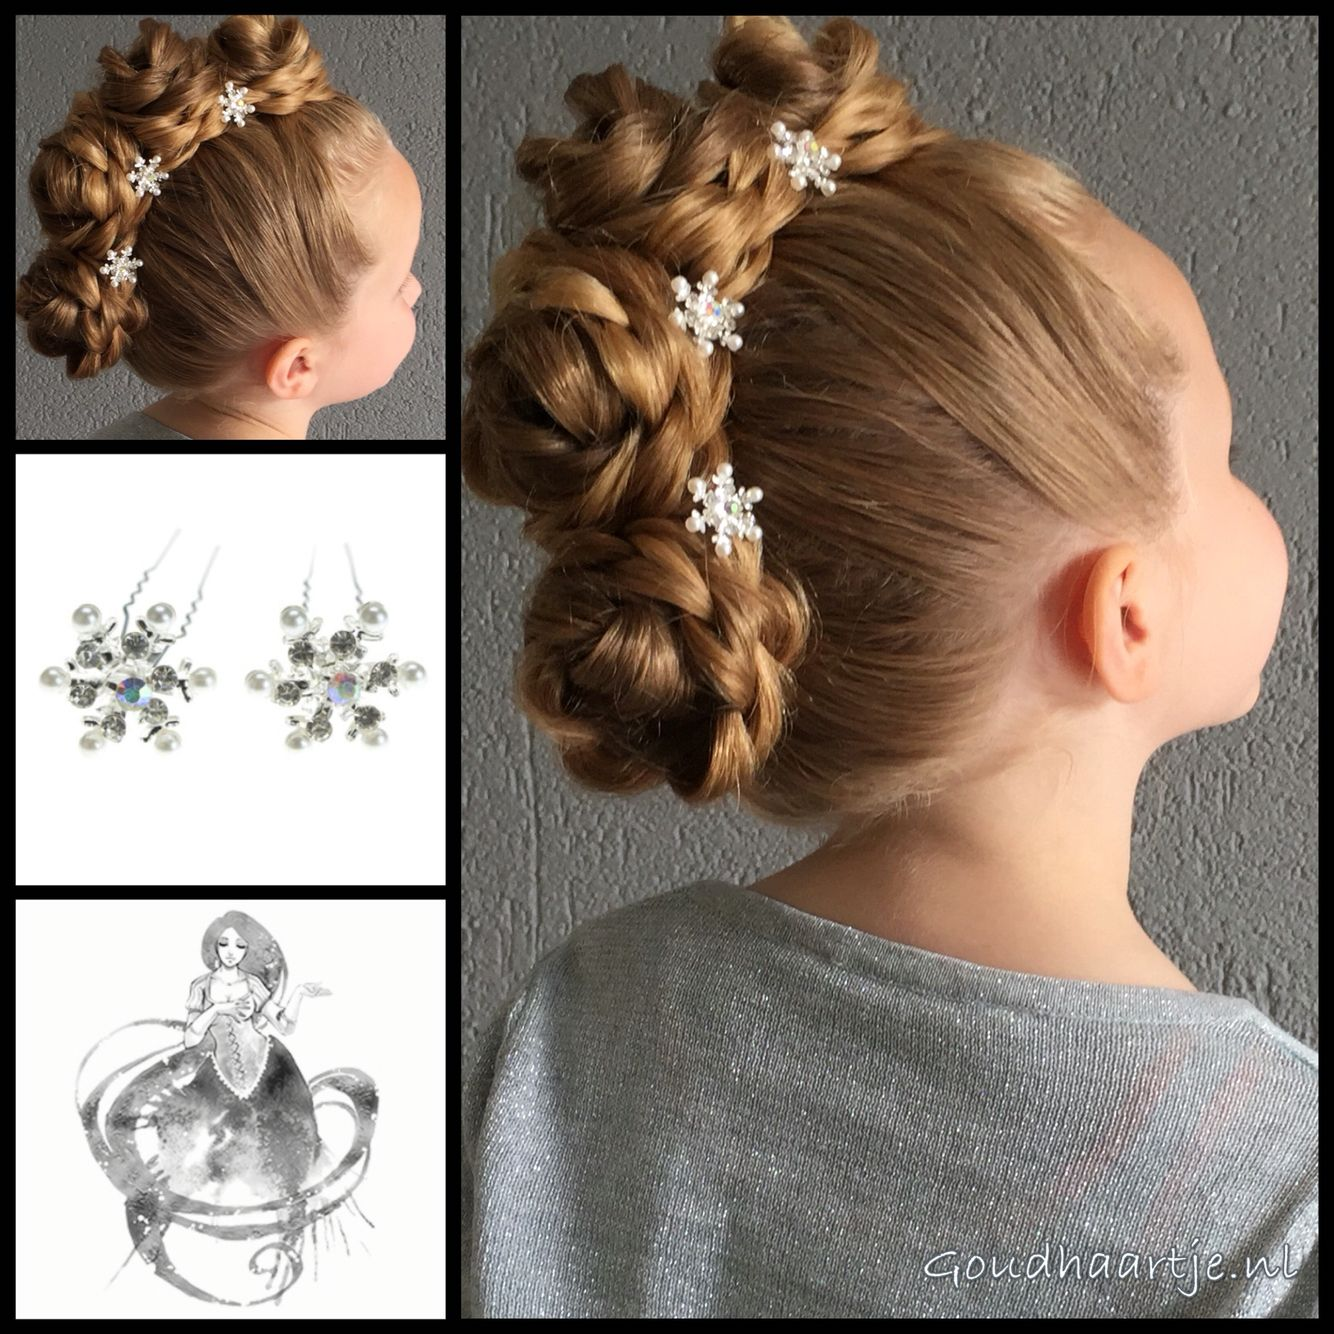 Bunhawk hairstyle with beautiful hairpins from the webshop